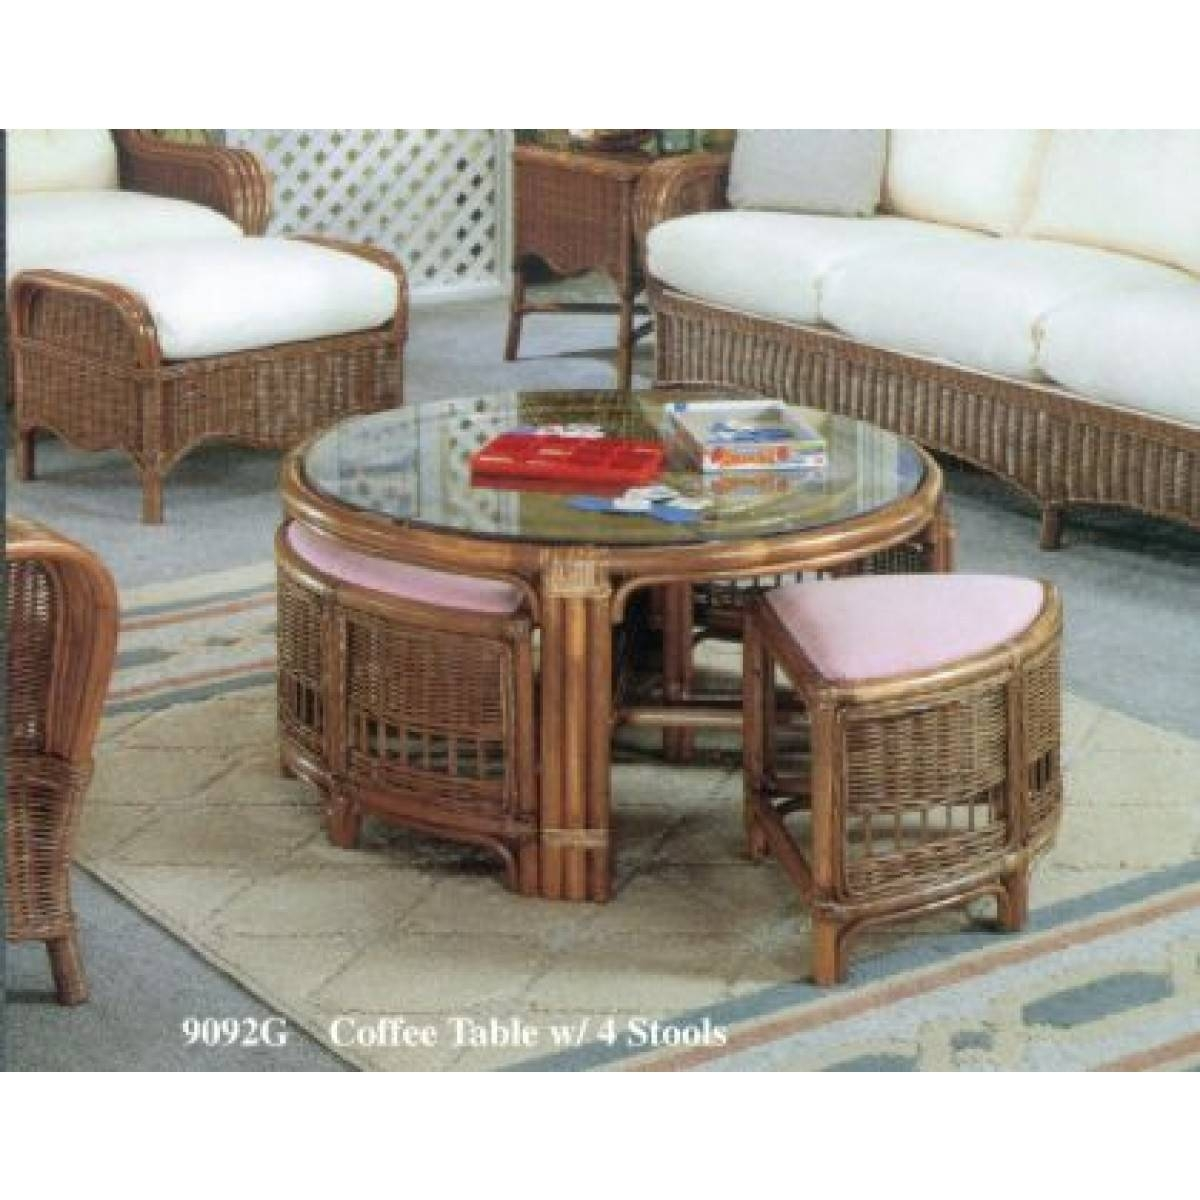 Classic Rattan Coffee Table With Stools | Patiosusa Inside Coffee Table With Stools (View 5 of 30)